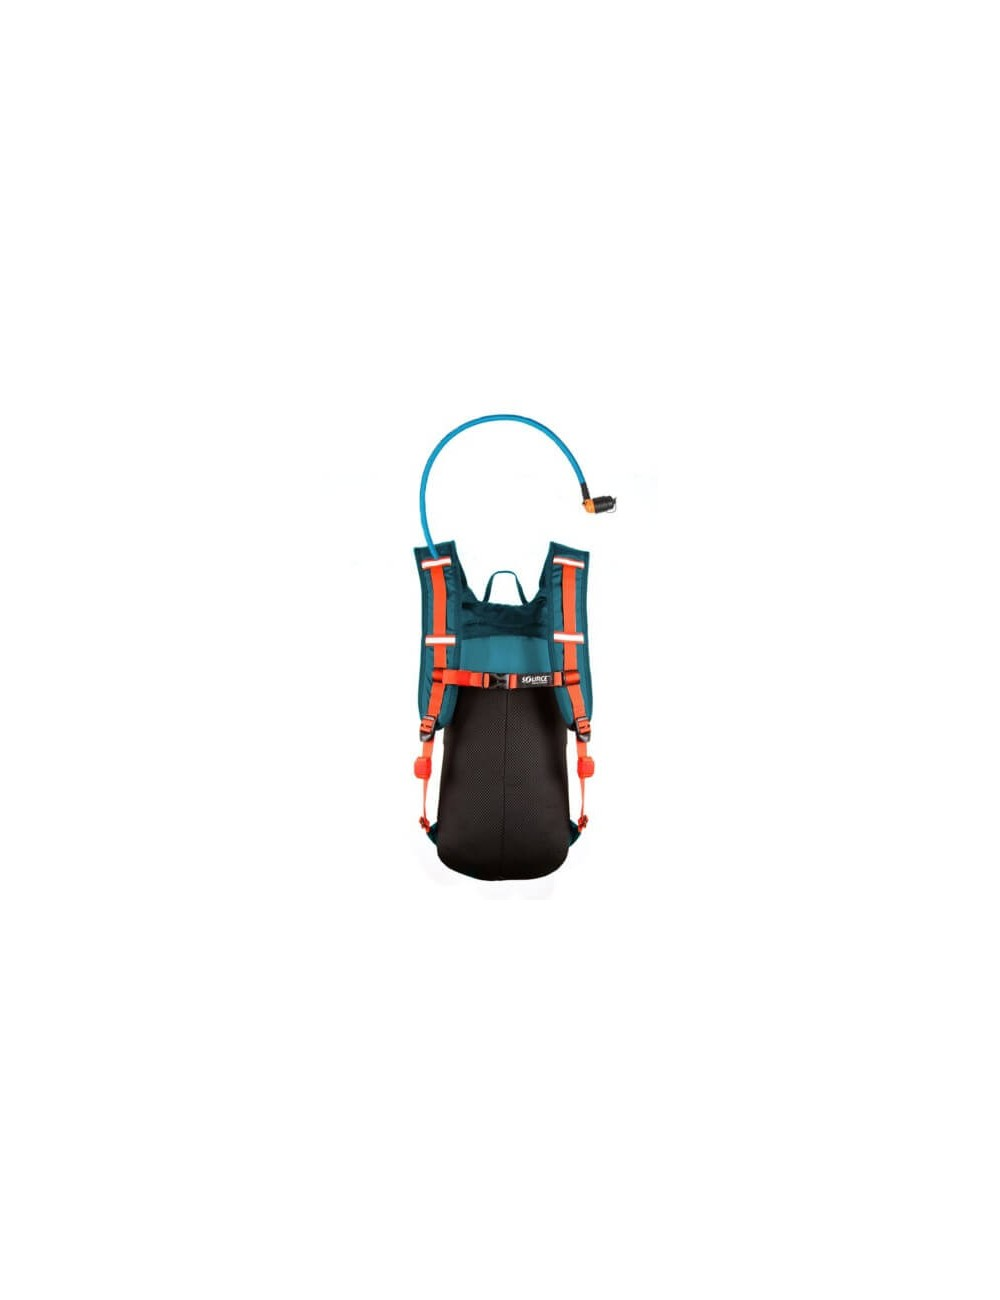 Source hydration pack Durabag 2020 Pro 2 liter - Coral Blue - Blauw